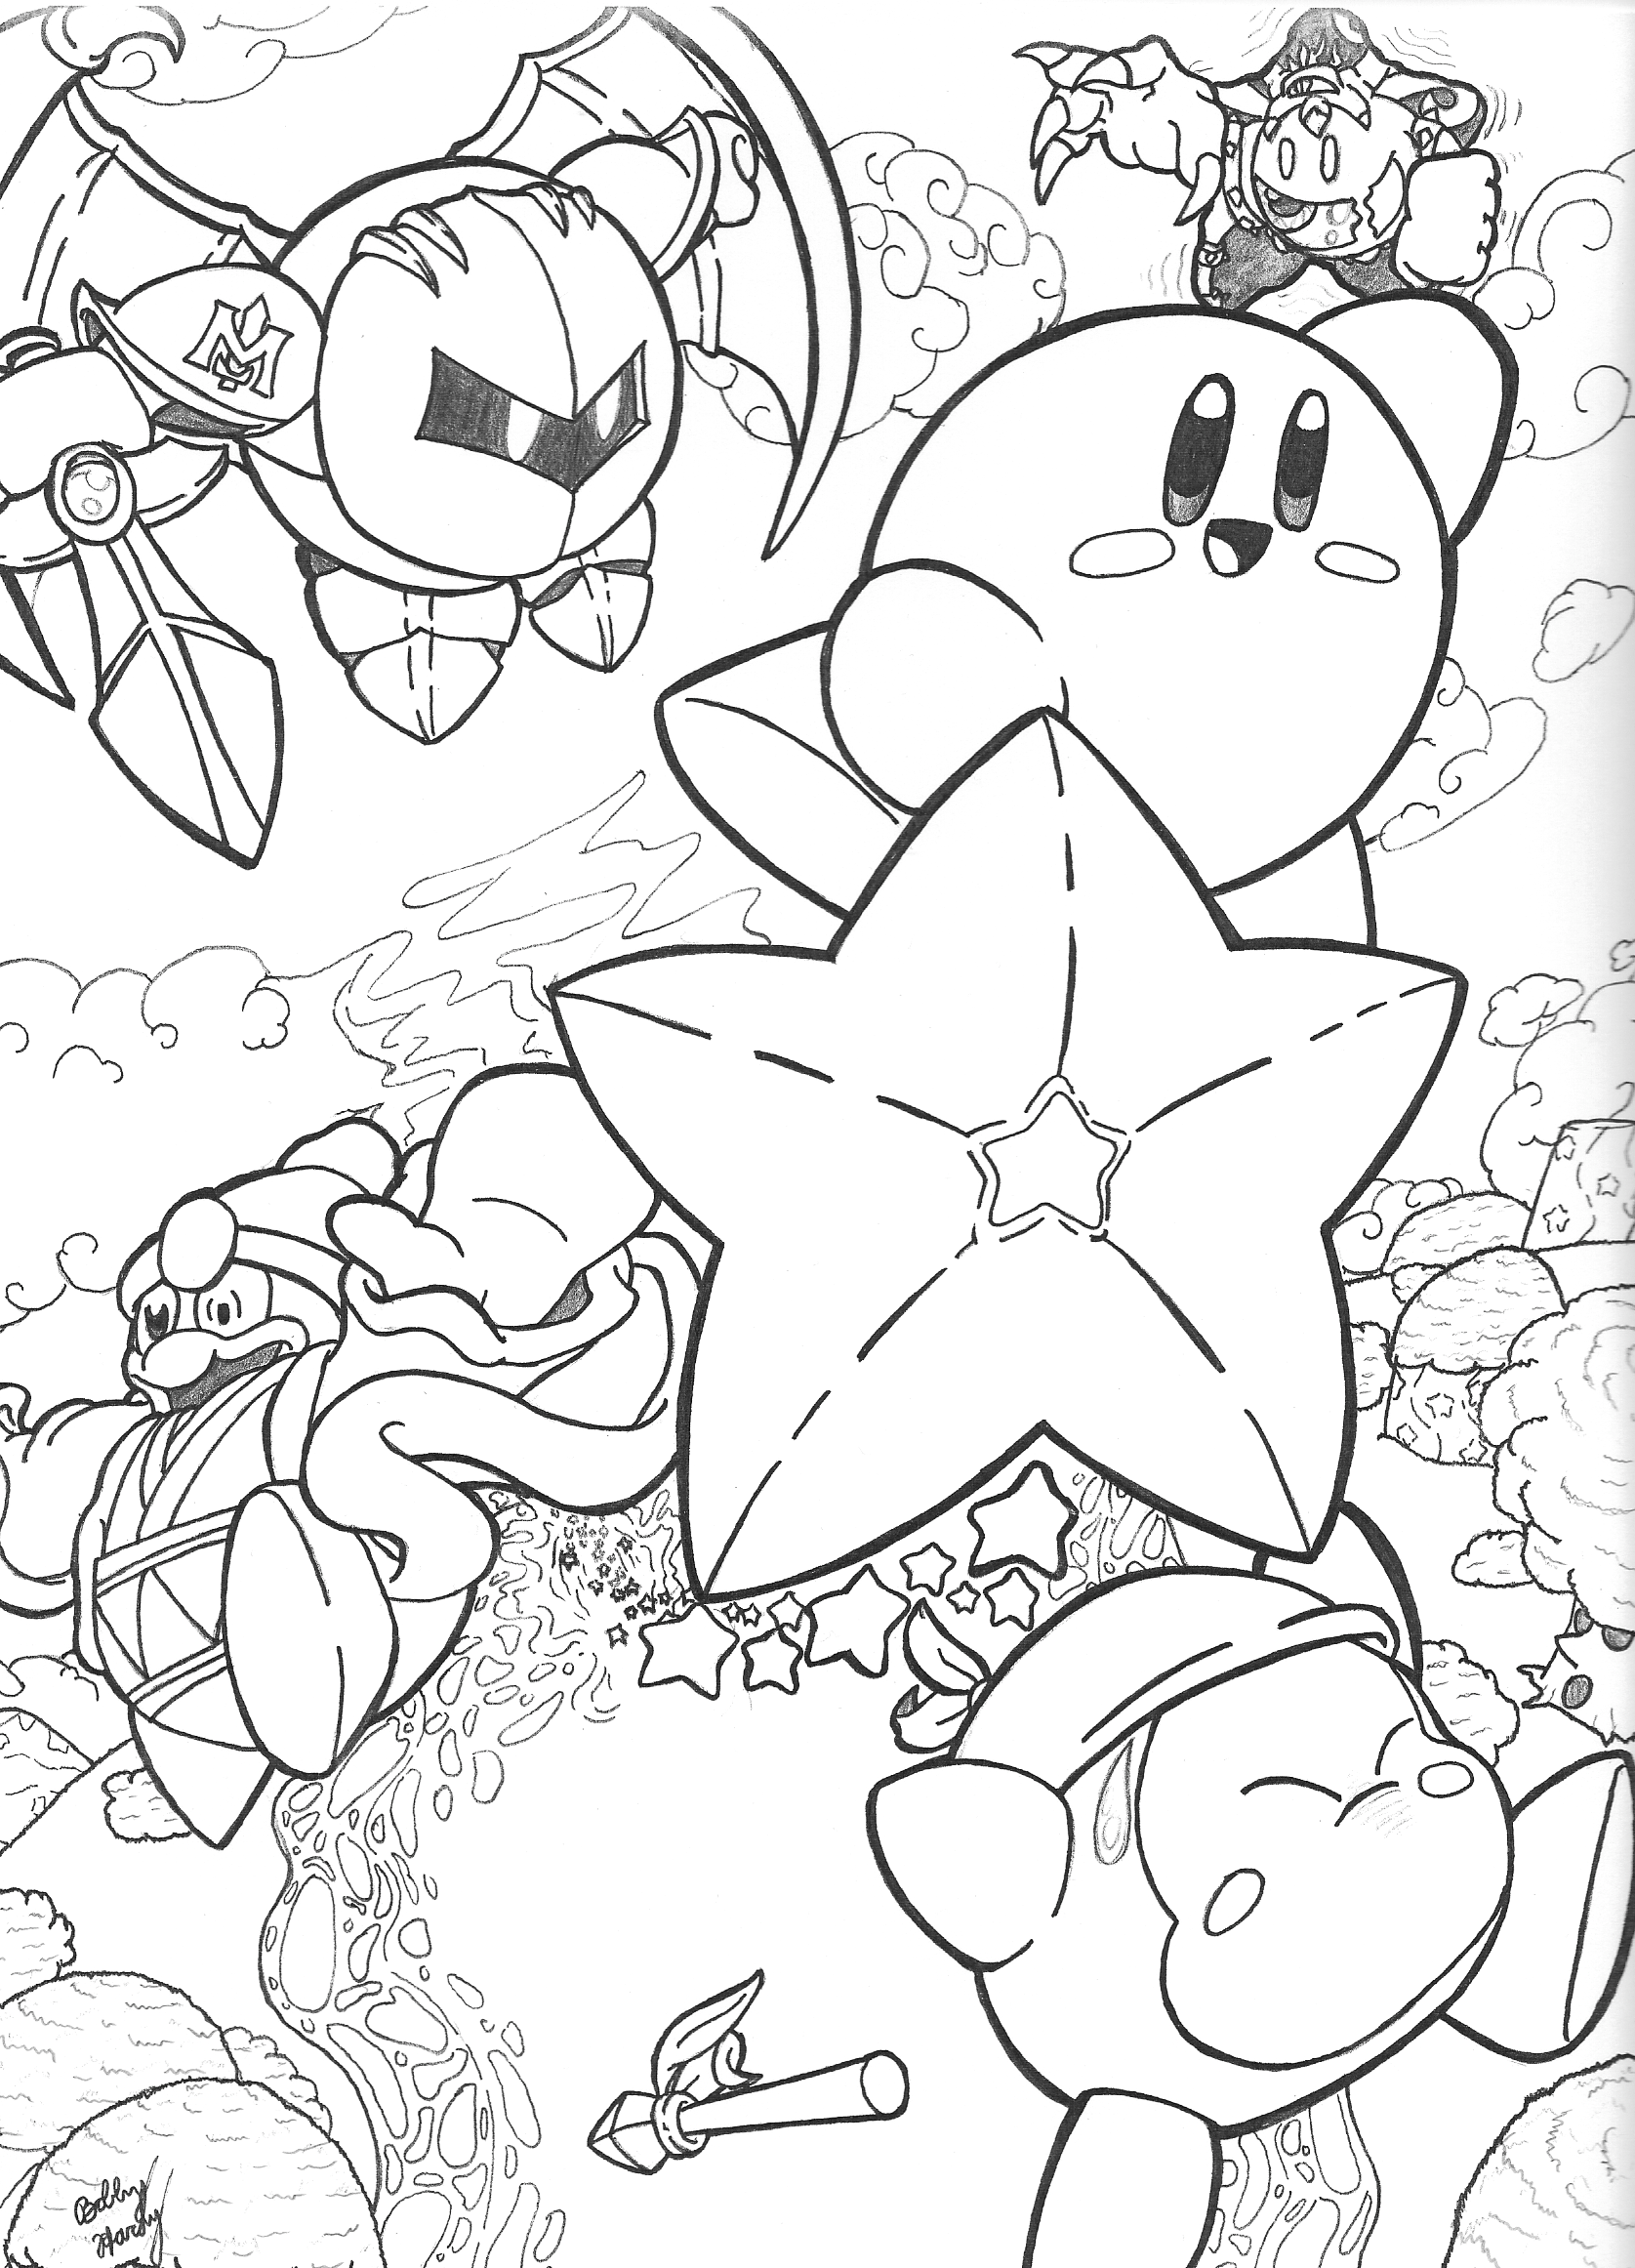 Coloring pages kirby -  Return Flight To Dreamland Kirby Commission By Th3antiguardian